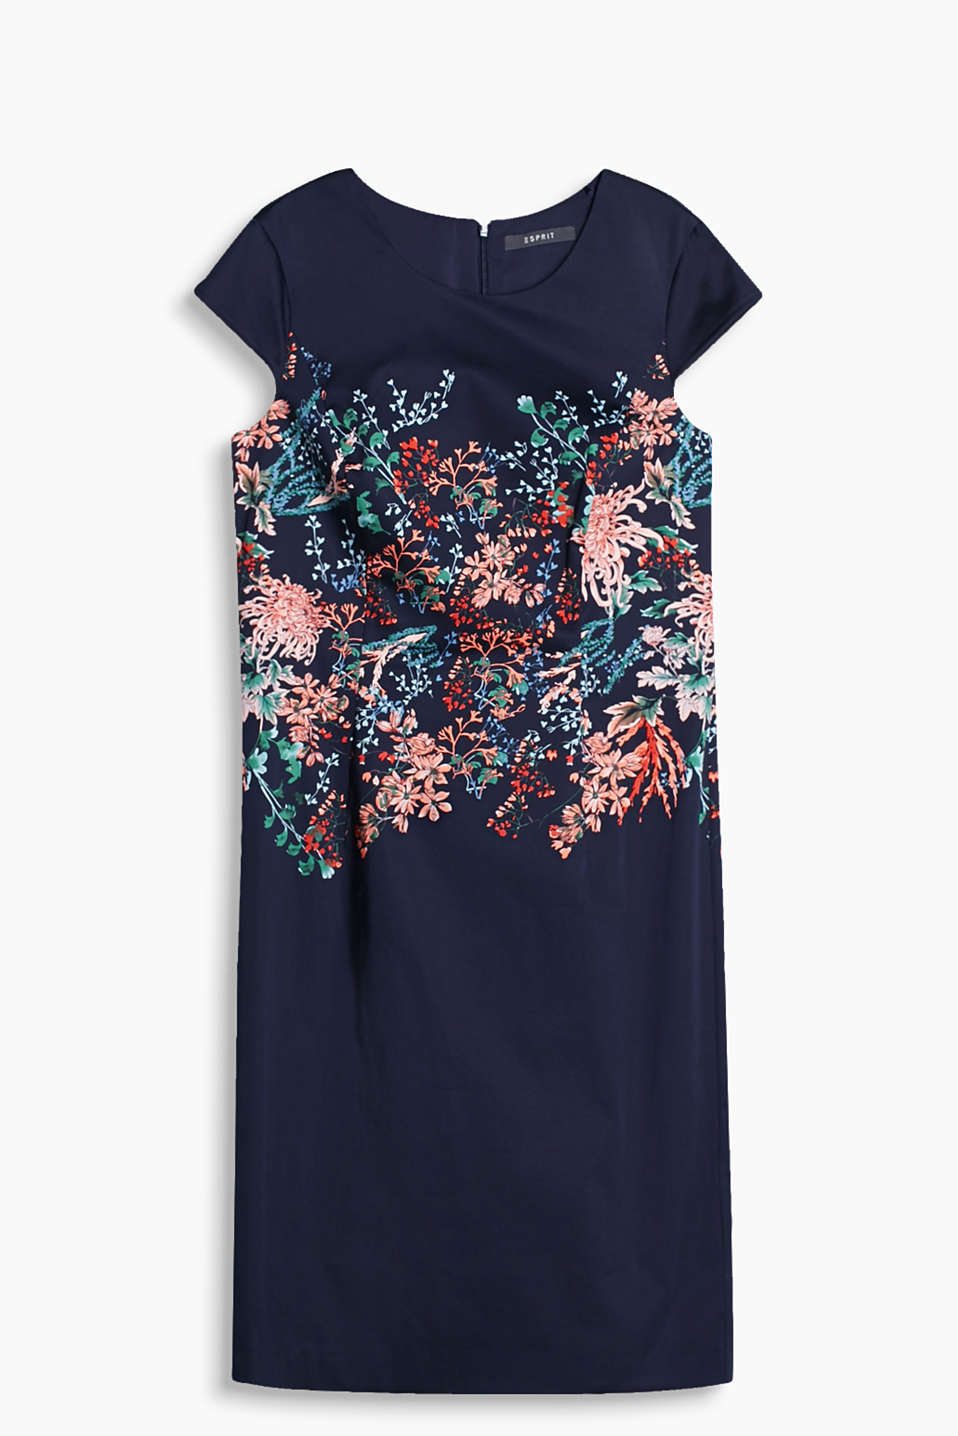 with a positioned floral print